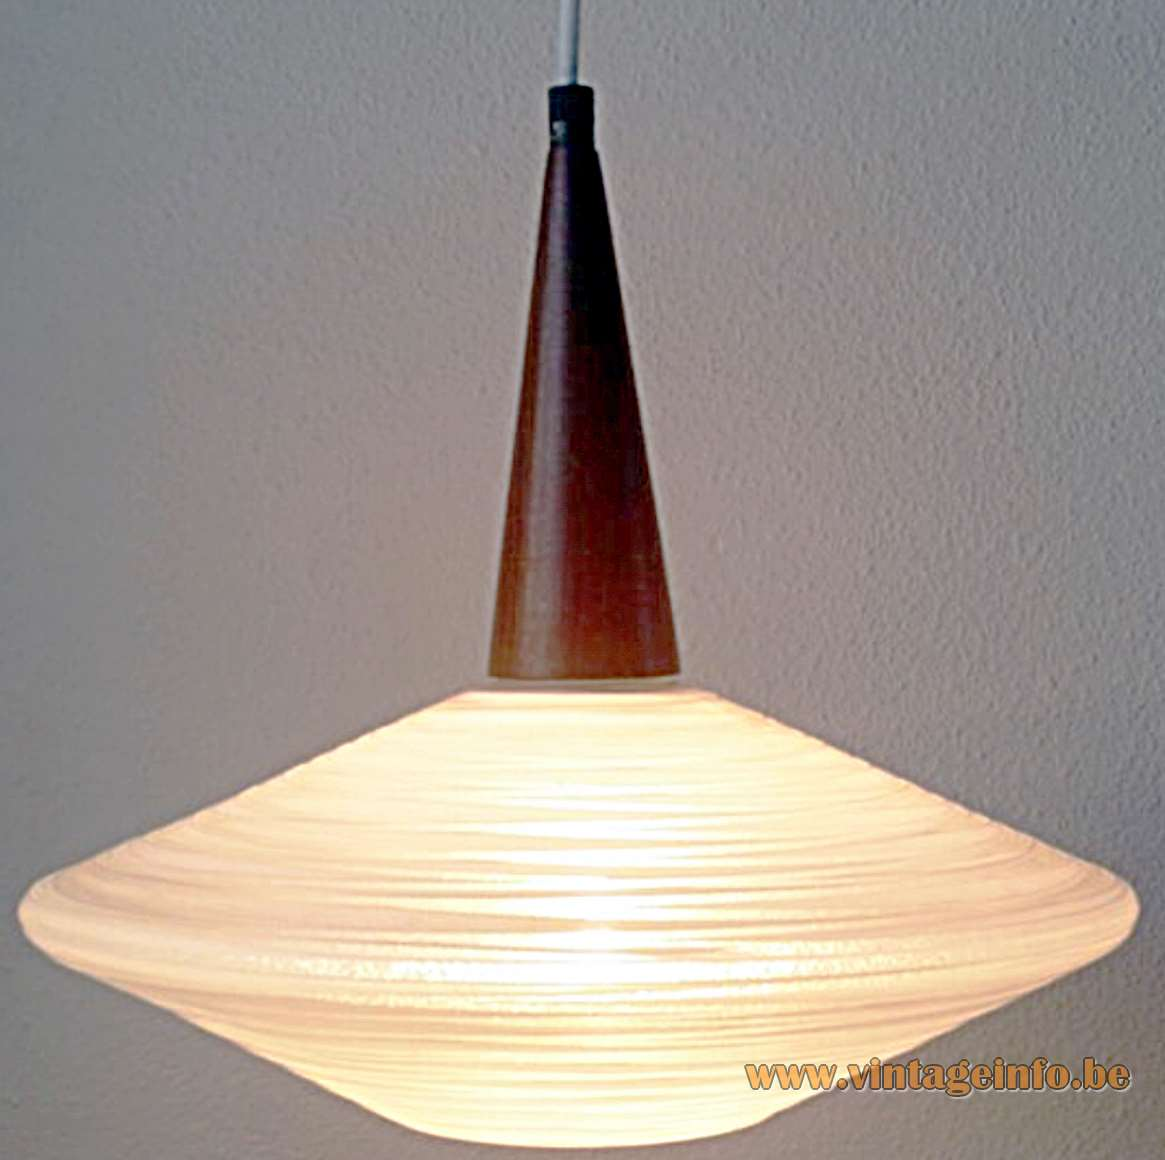 Philips Opal Pendant Lamp - Philips Pendant Lamp NG 74-30